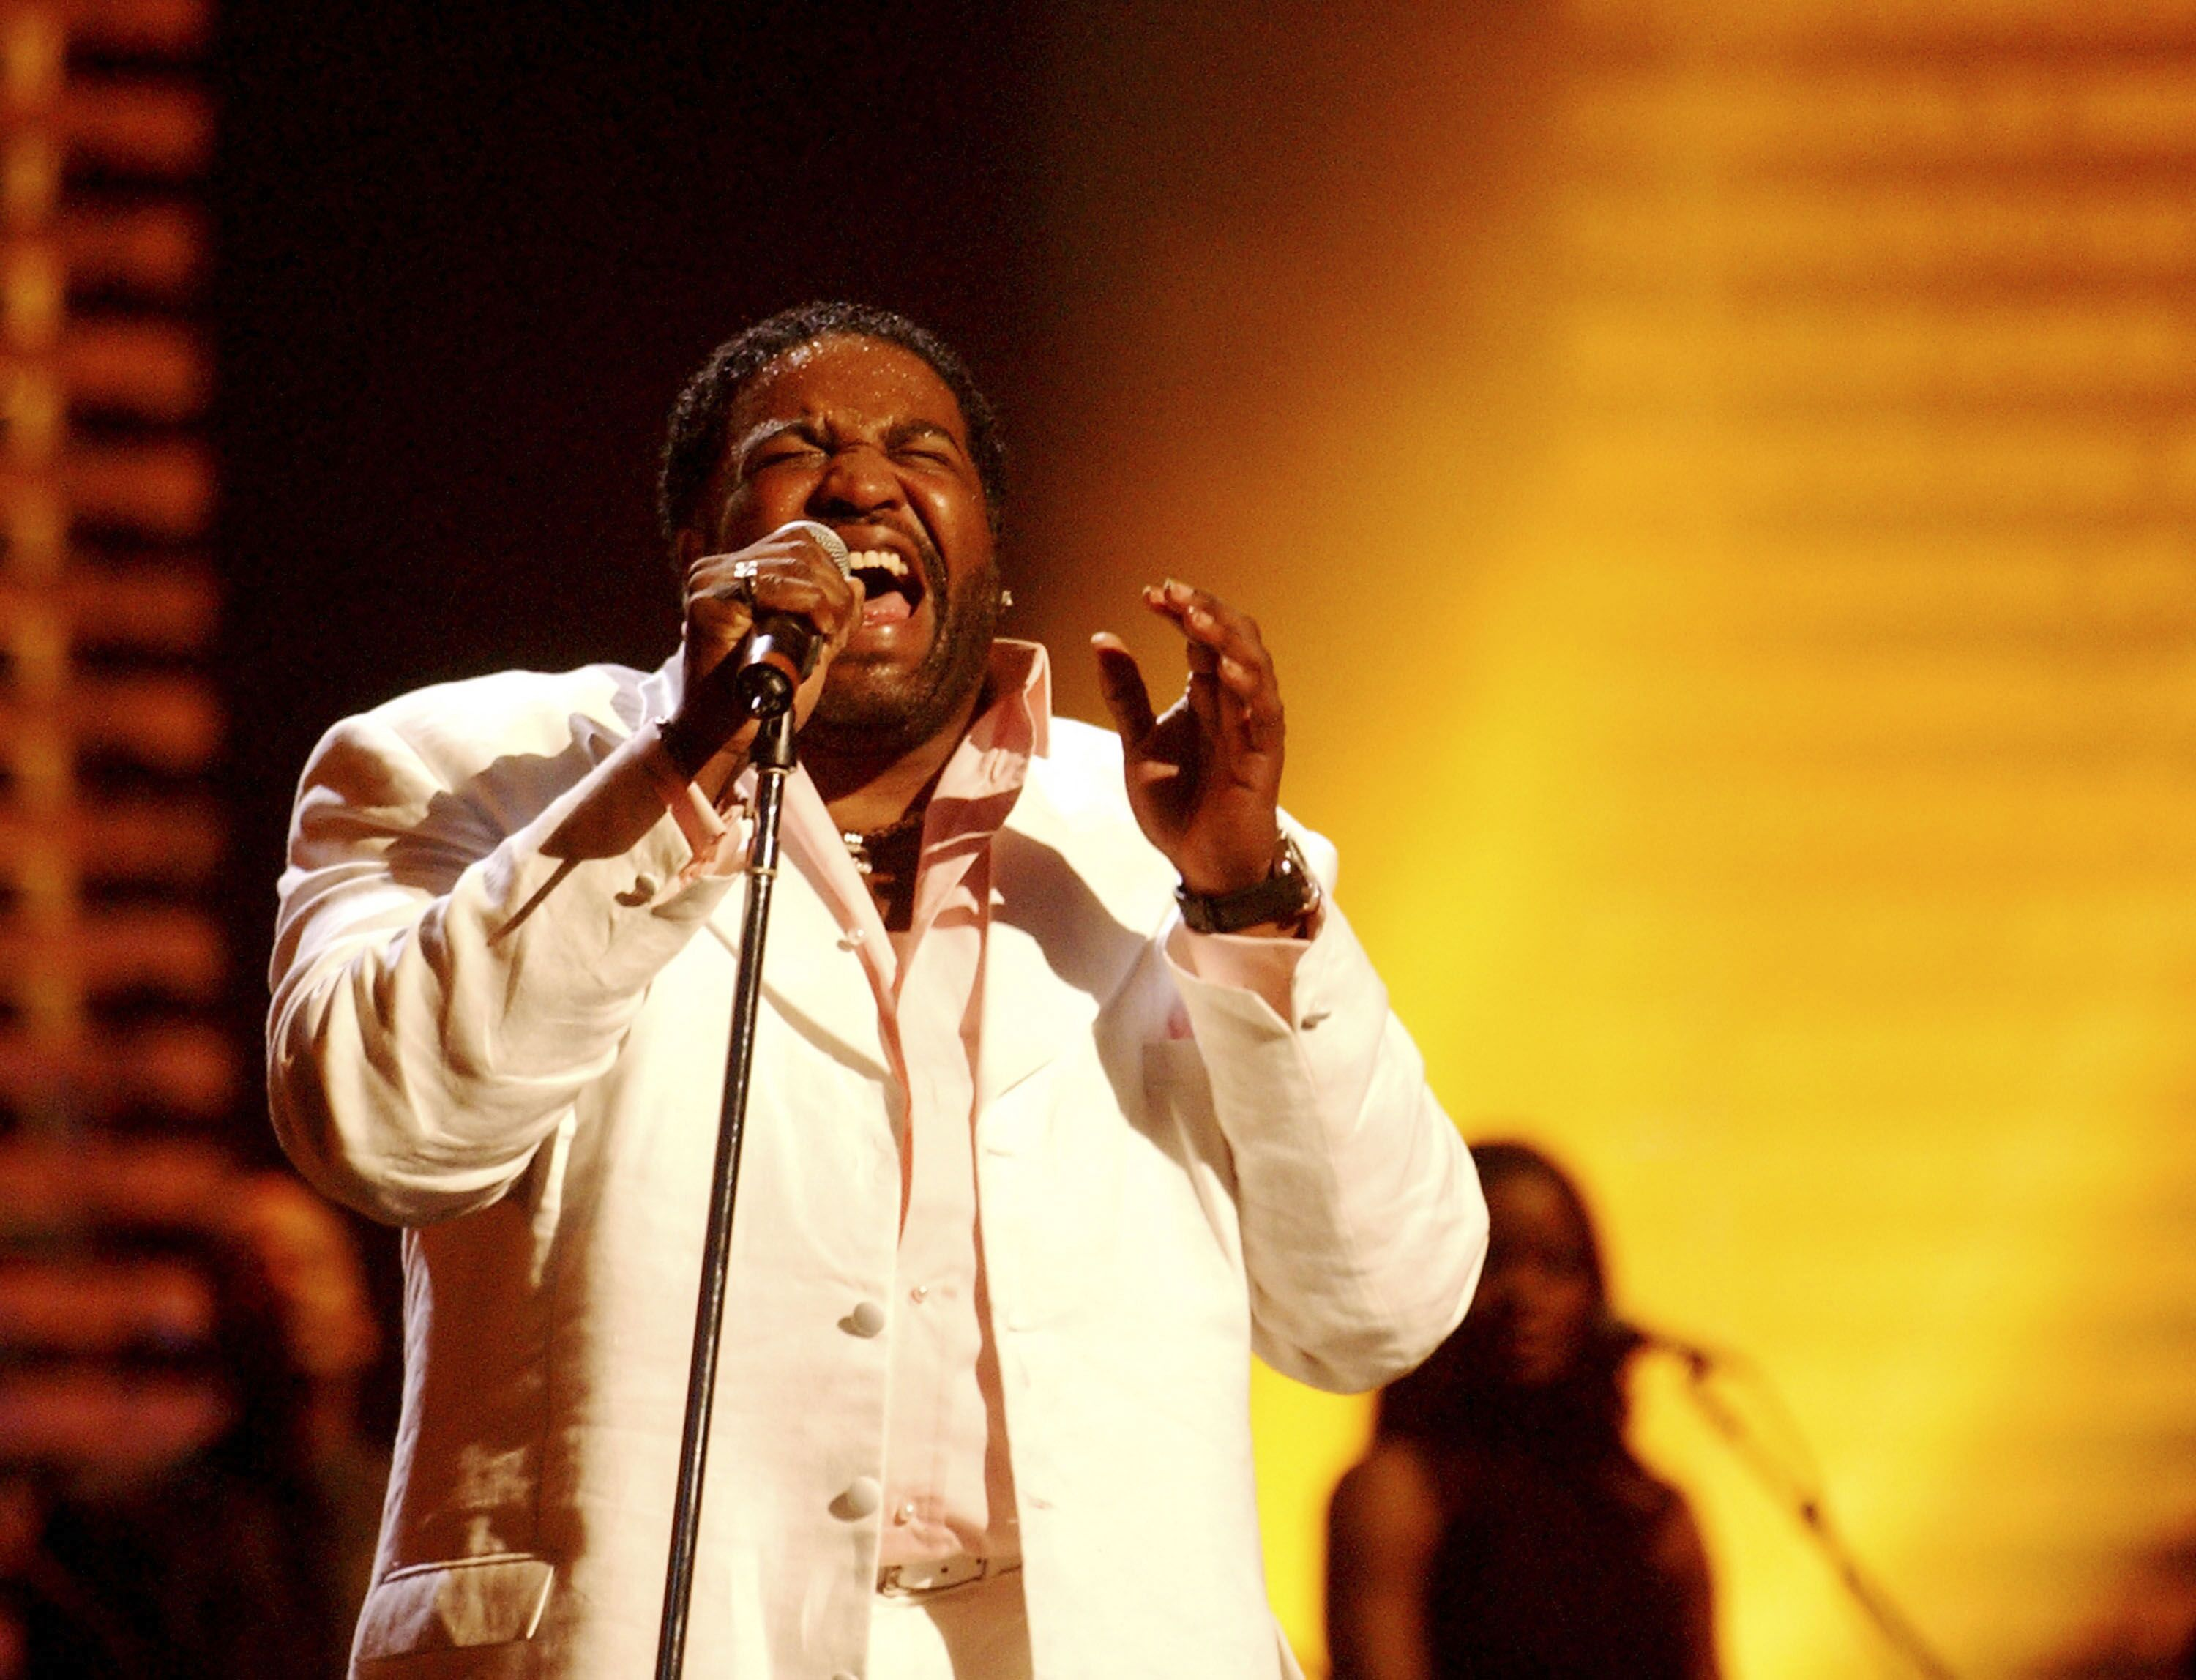 Gerald Levert onstage at the 2003 Essence Festival on July 5, 2003 in New Orleans, Louisiana.   Photo: Getty Images